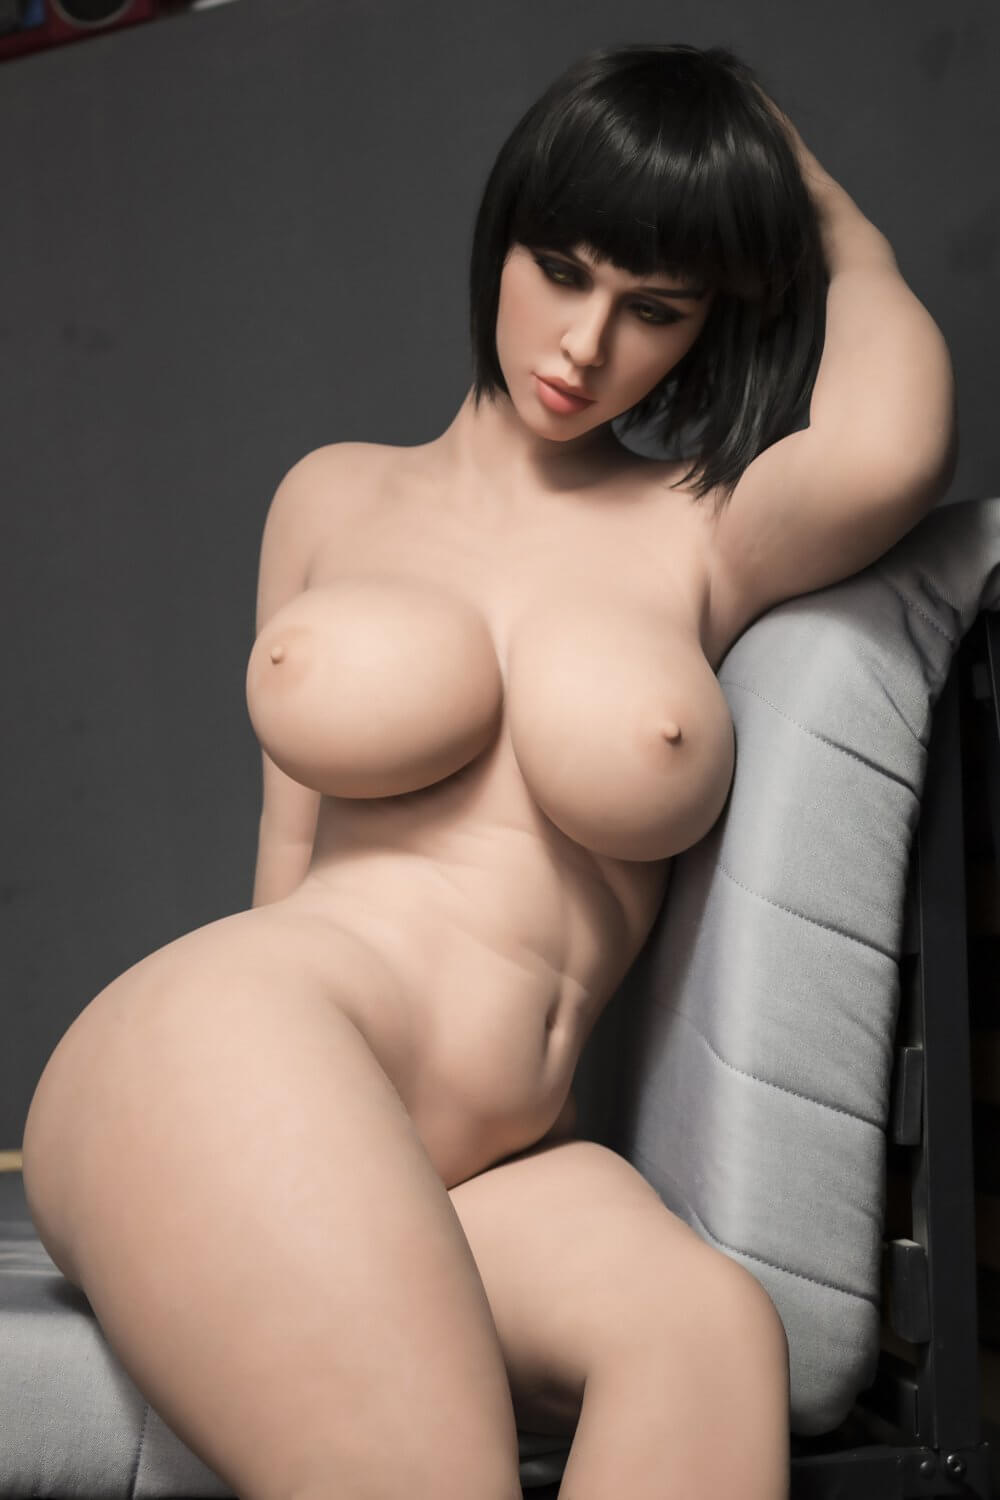 Prima Fat Sex Doll with Biggest Breasts and Butt - USA Love Doll